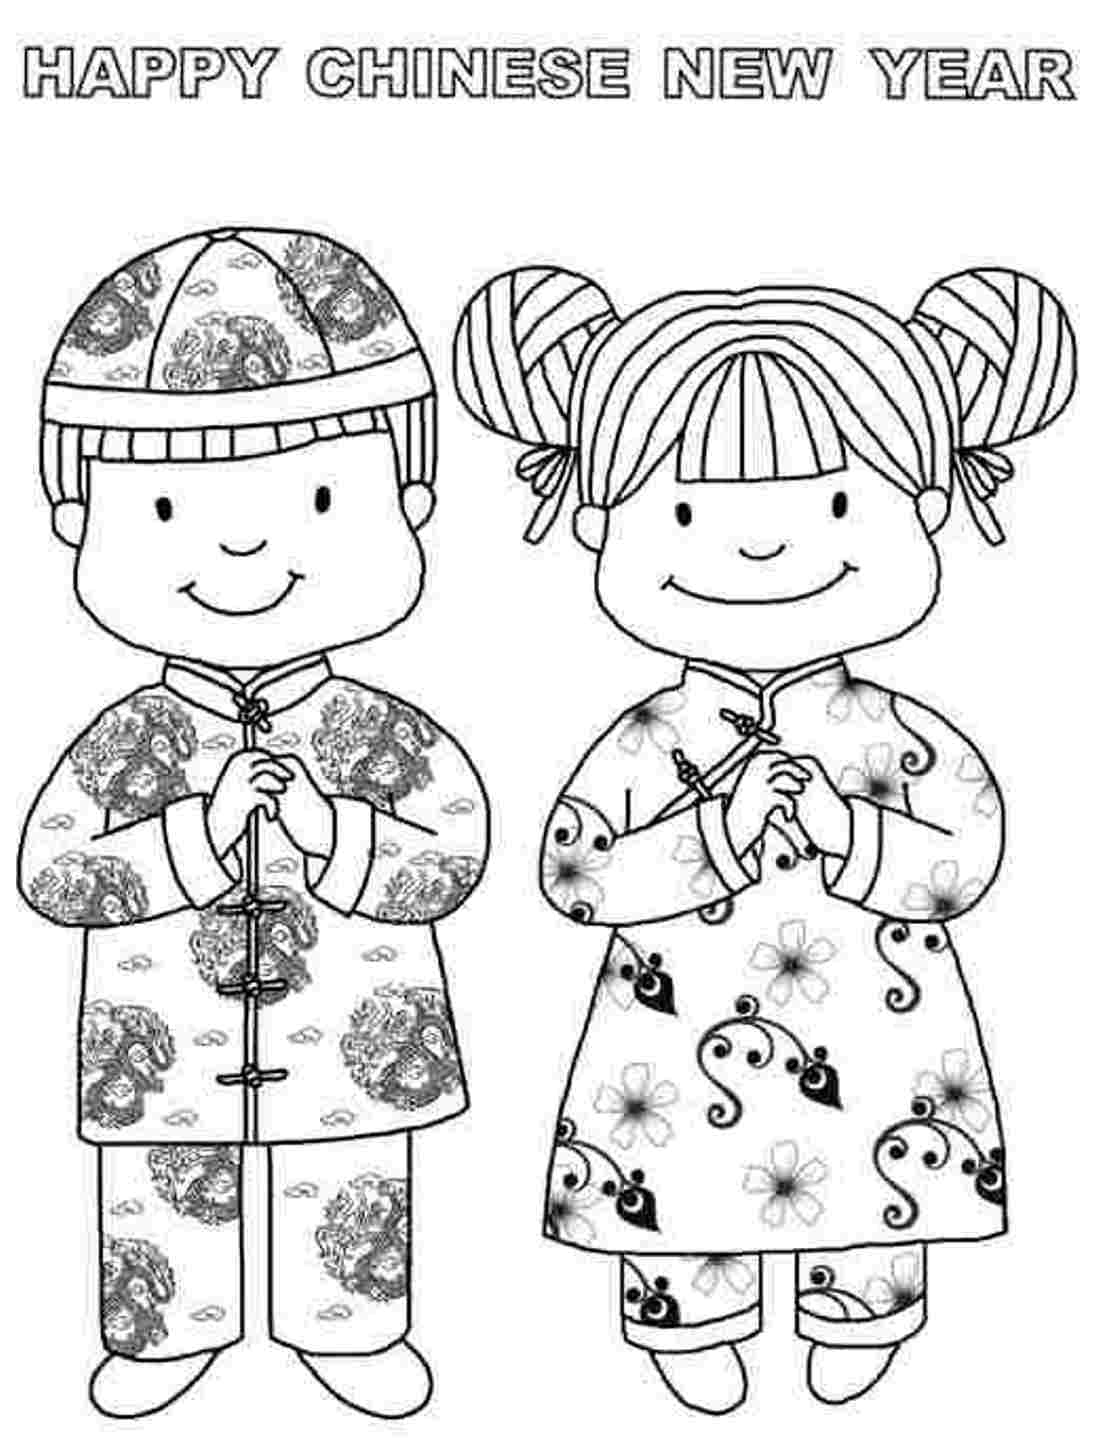 3517 Chinese New Year free clipart.